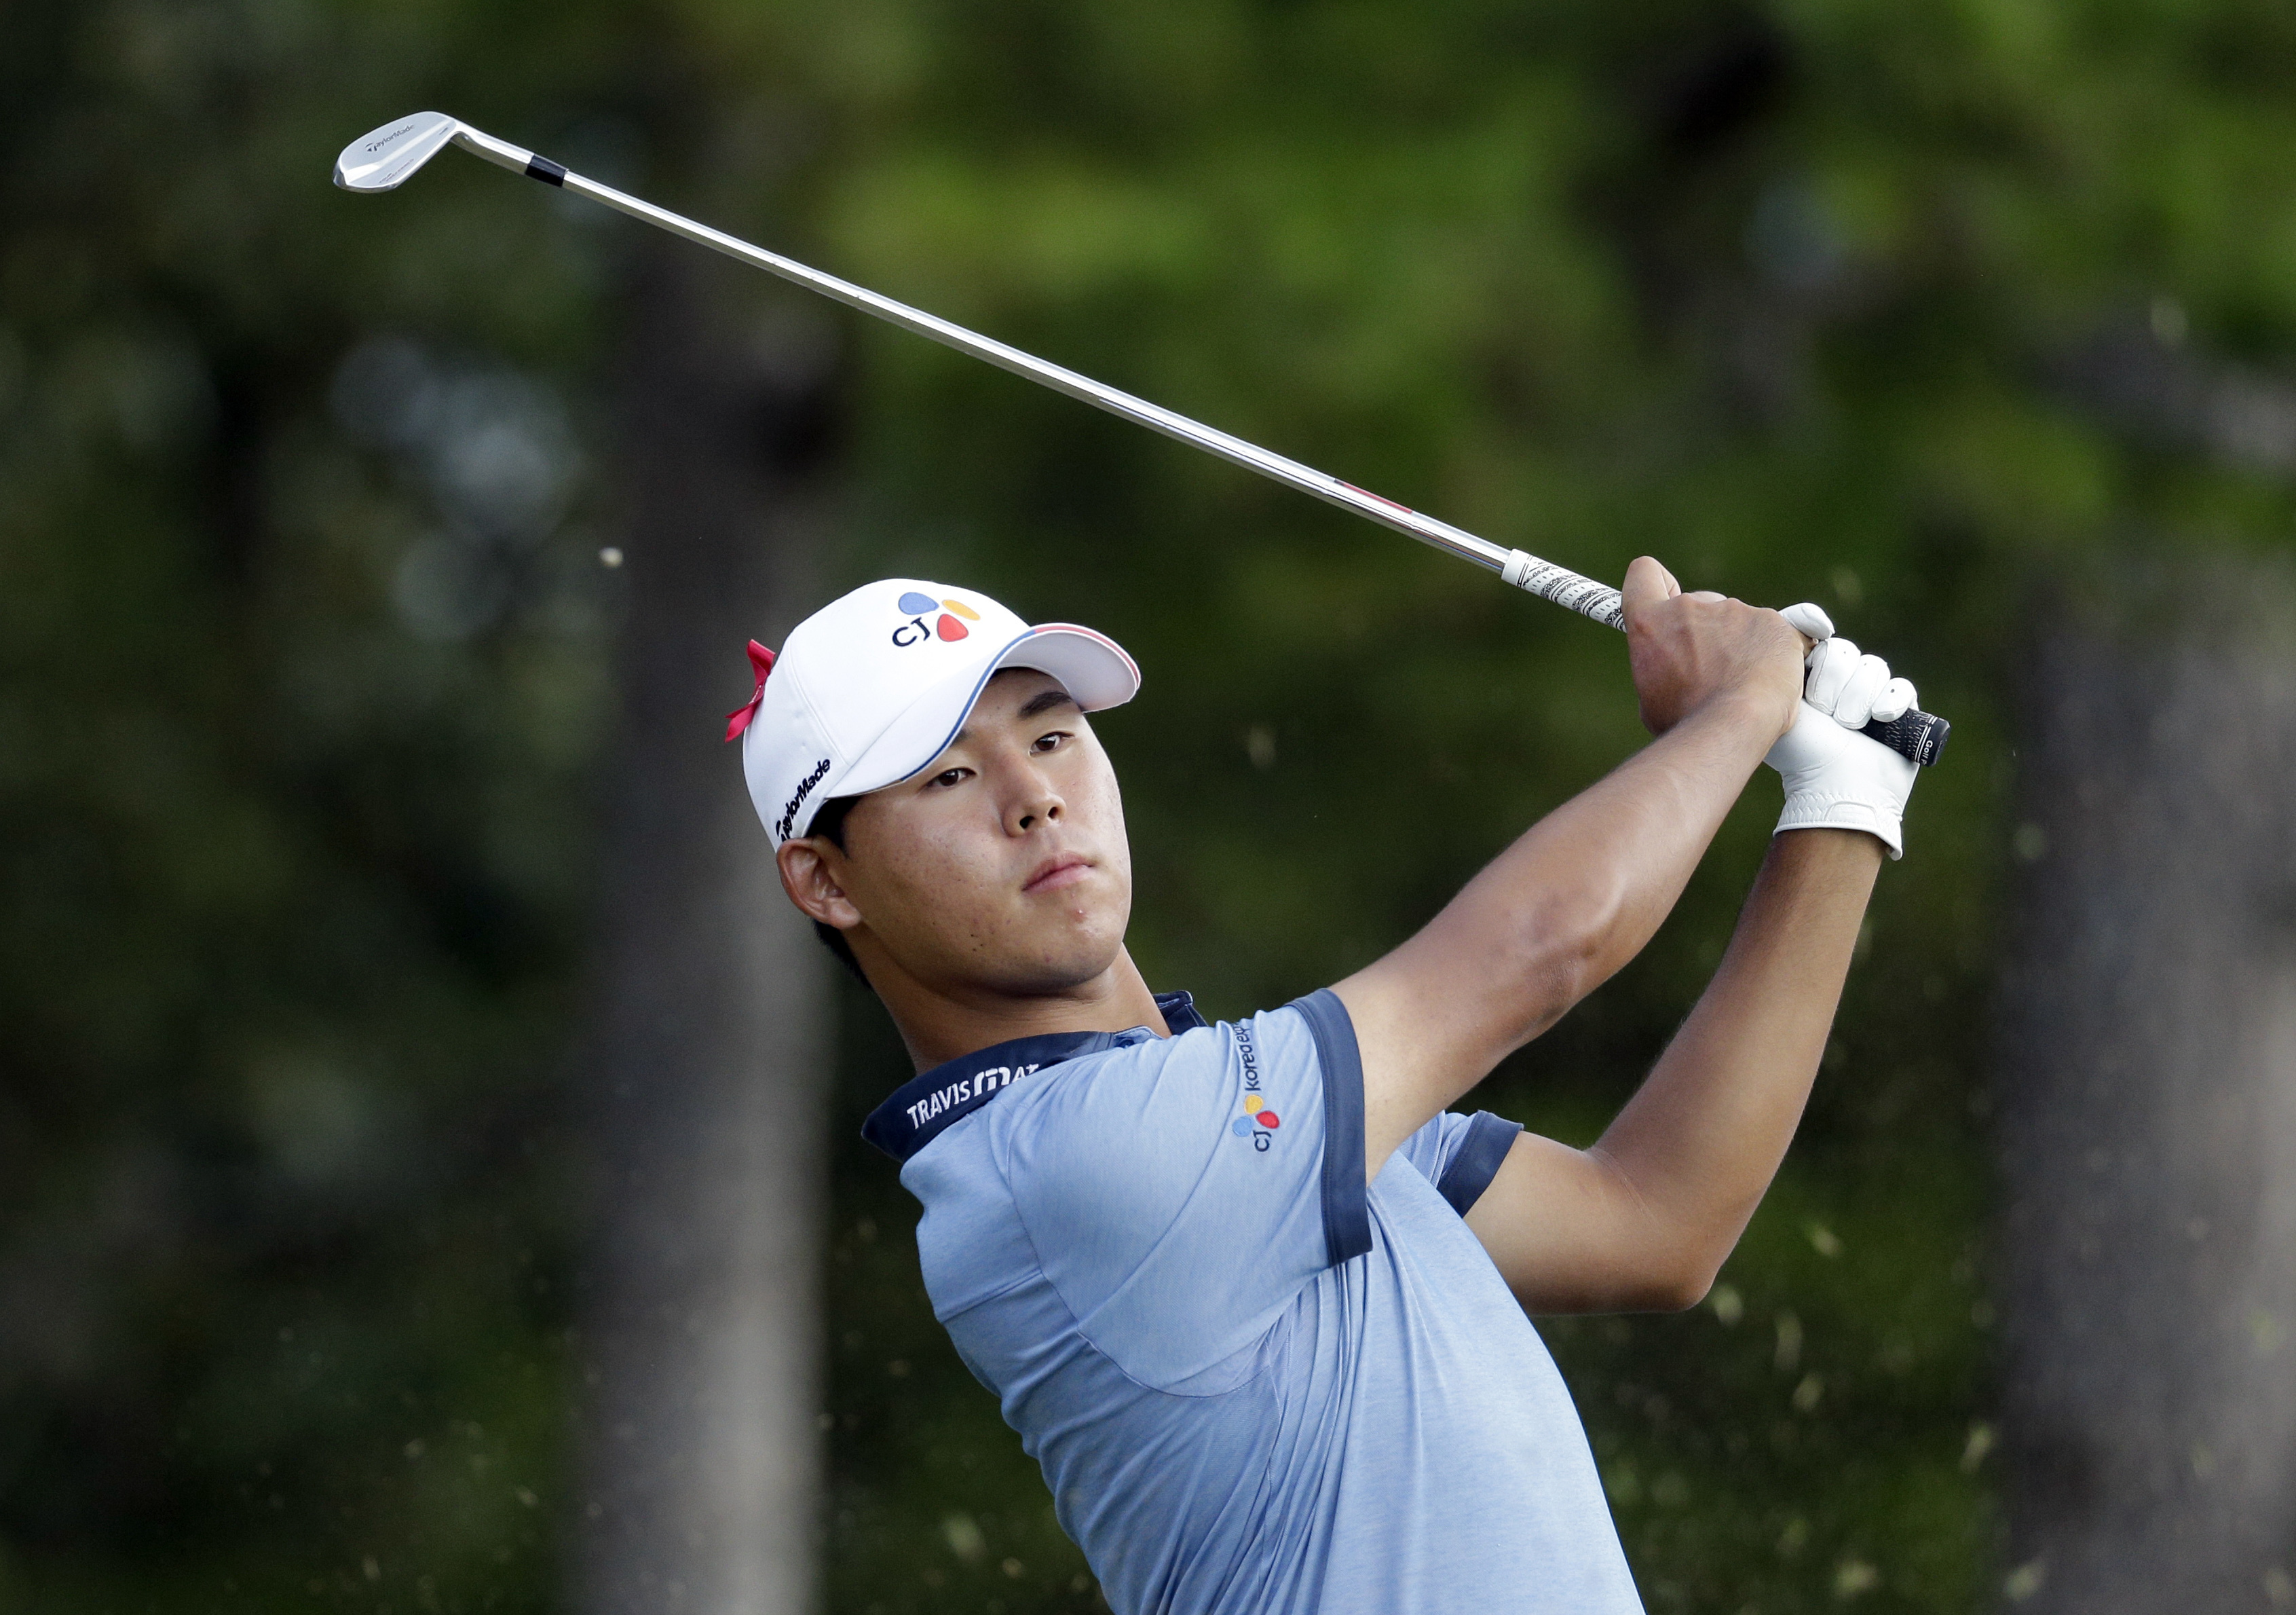 Si Woo Kim watches his tee shot on the 16th hole during the final round of the Wyndham Championship golf tournament in Greensboro, N.C., Sunday, Aug. 21, 2016. (AP Photo/Chuck Burton)